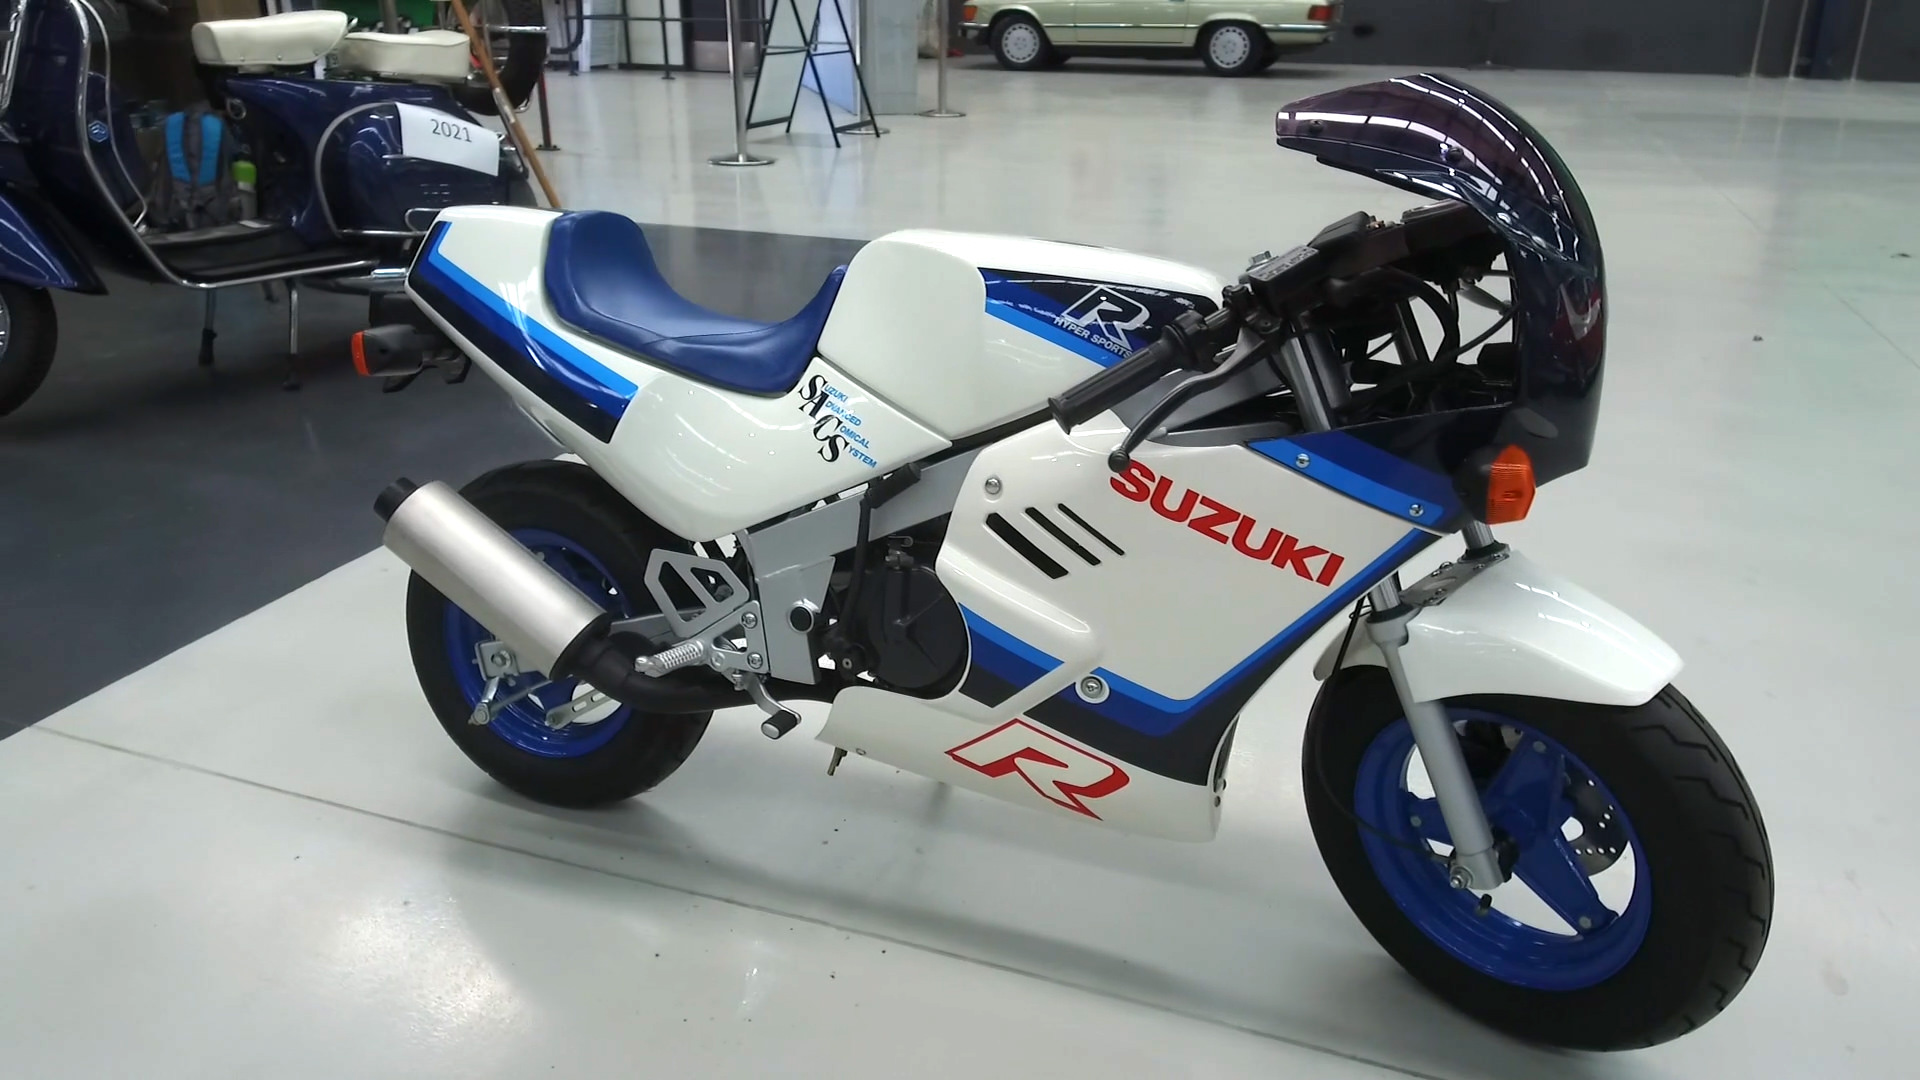 1986 Suzuki RB50 125CC R Hyper Sports GAG Motorcycle - 2021 Shannons Summer Timed Online Auction